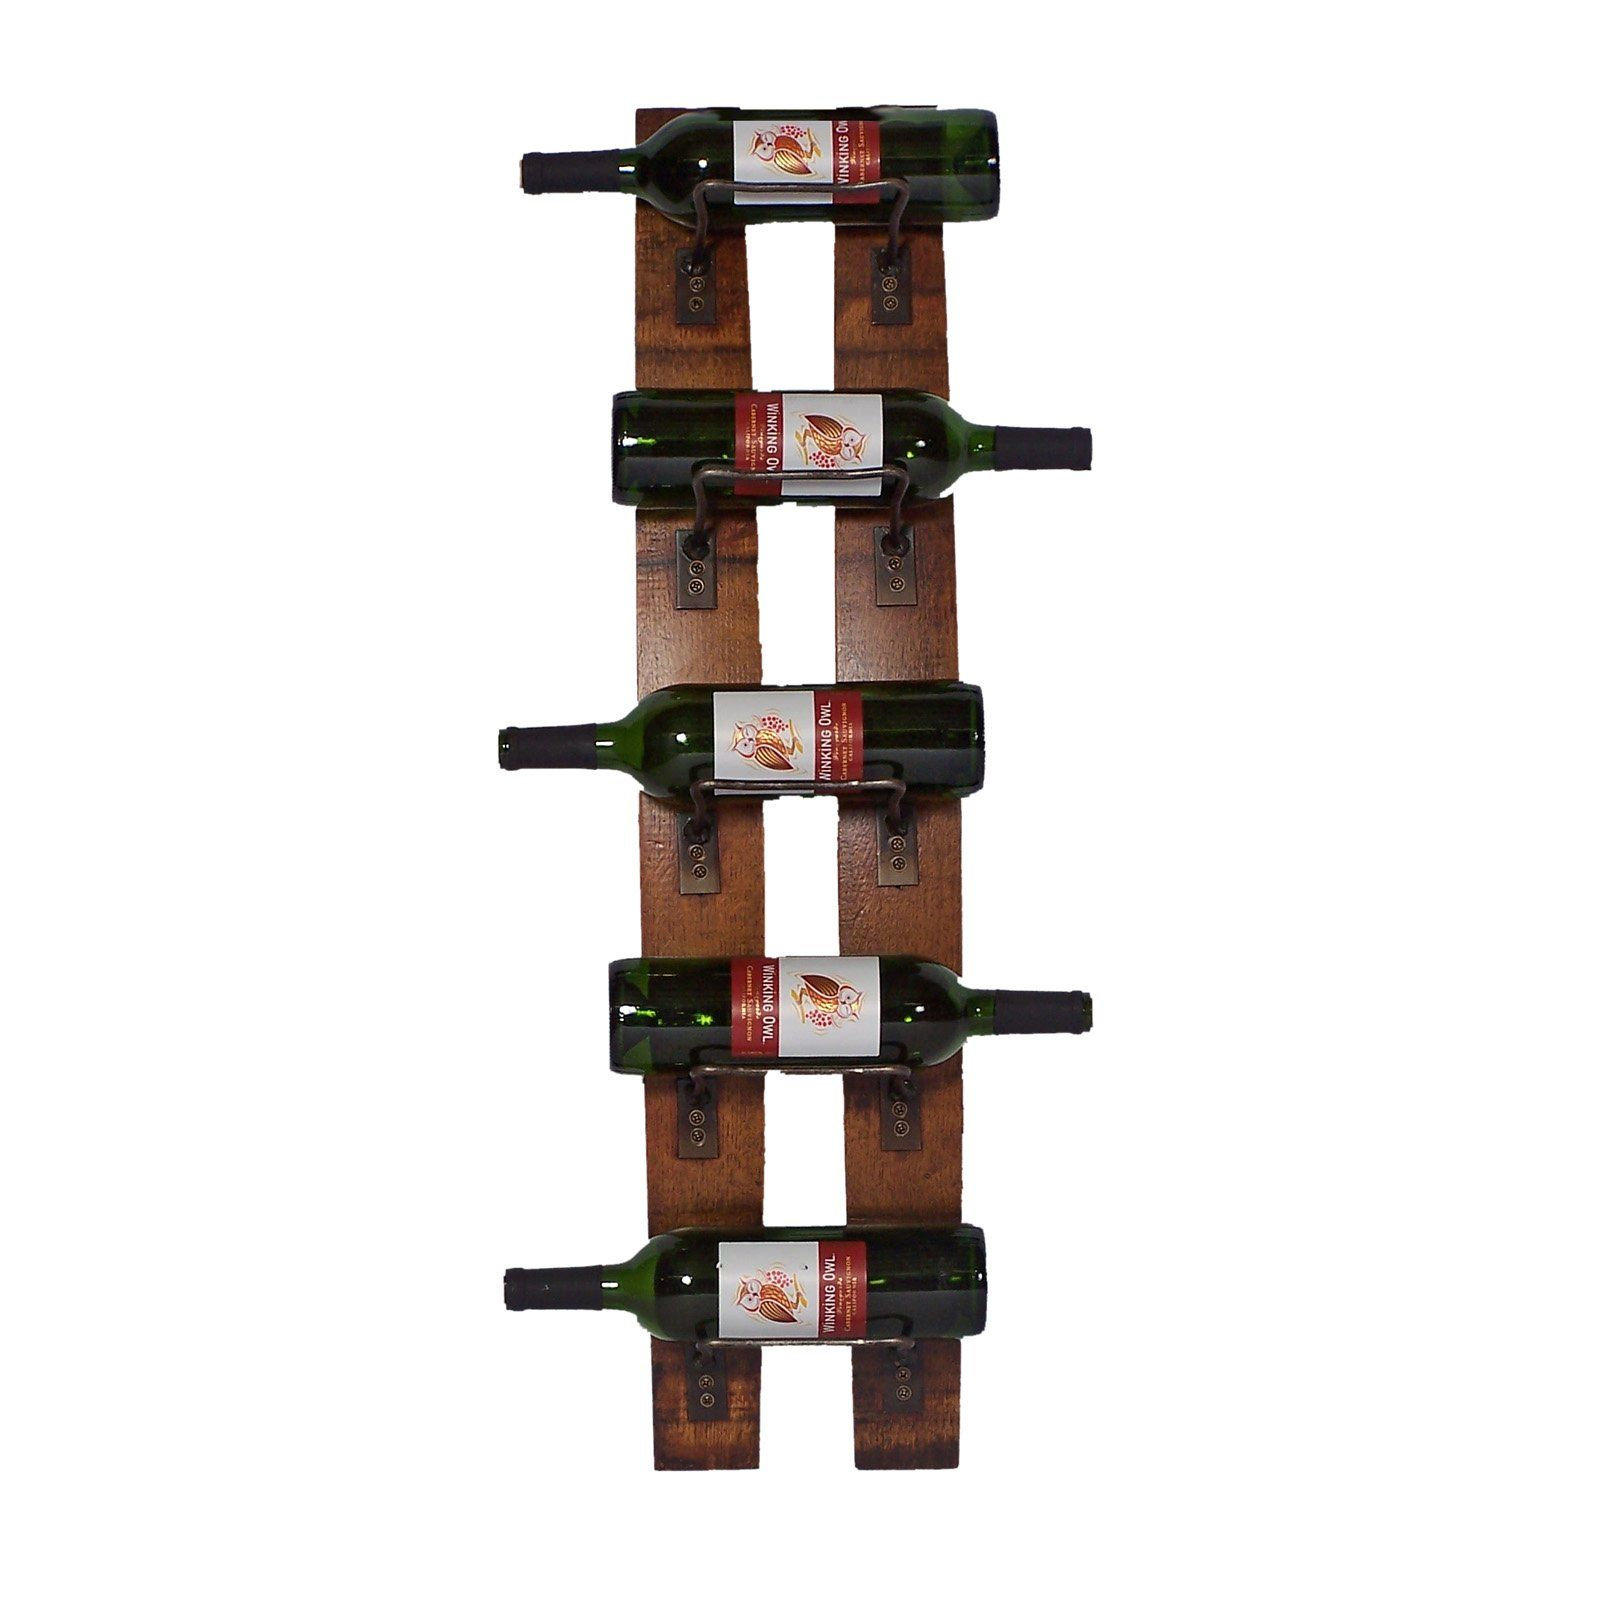 17 Best images about Vineras on Pinterest | Wine racks, Wine storage and  Crates